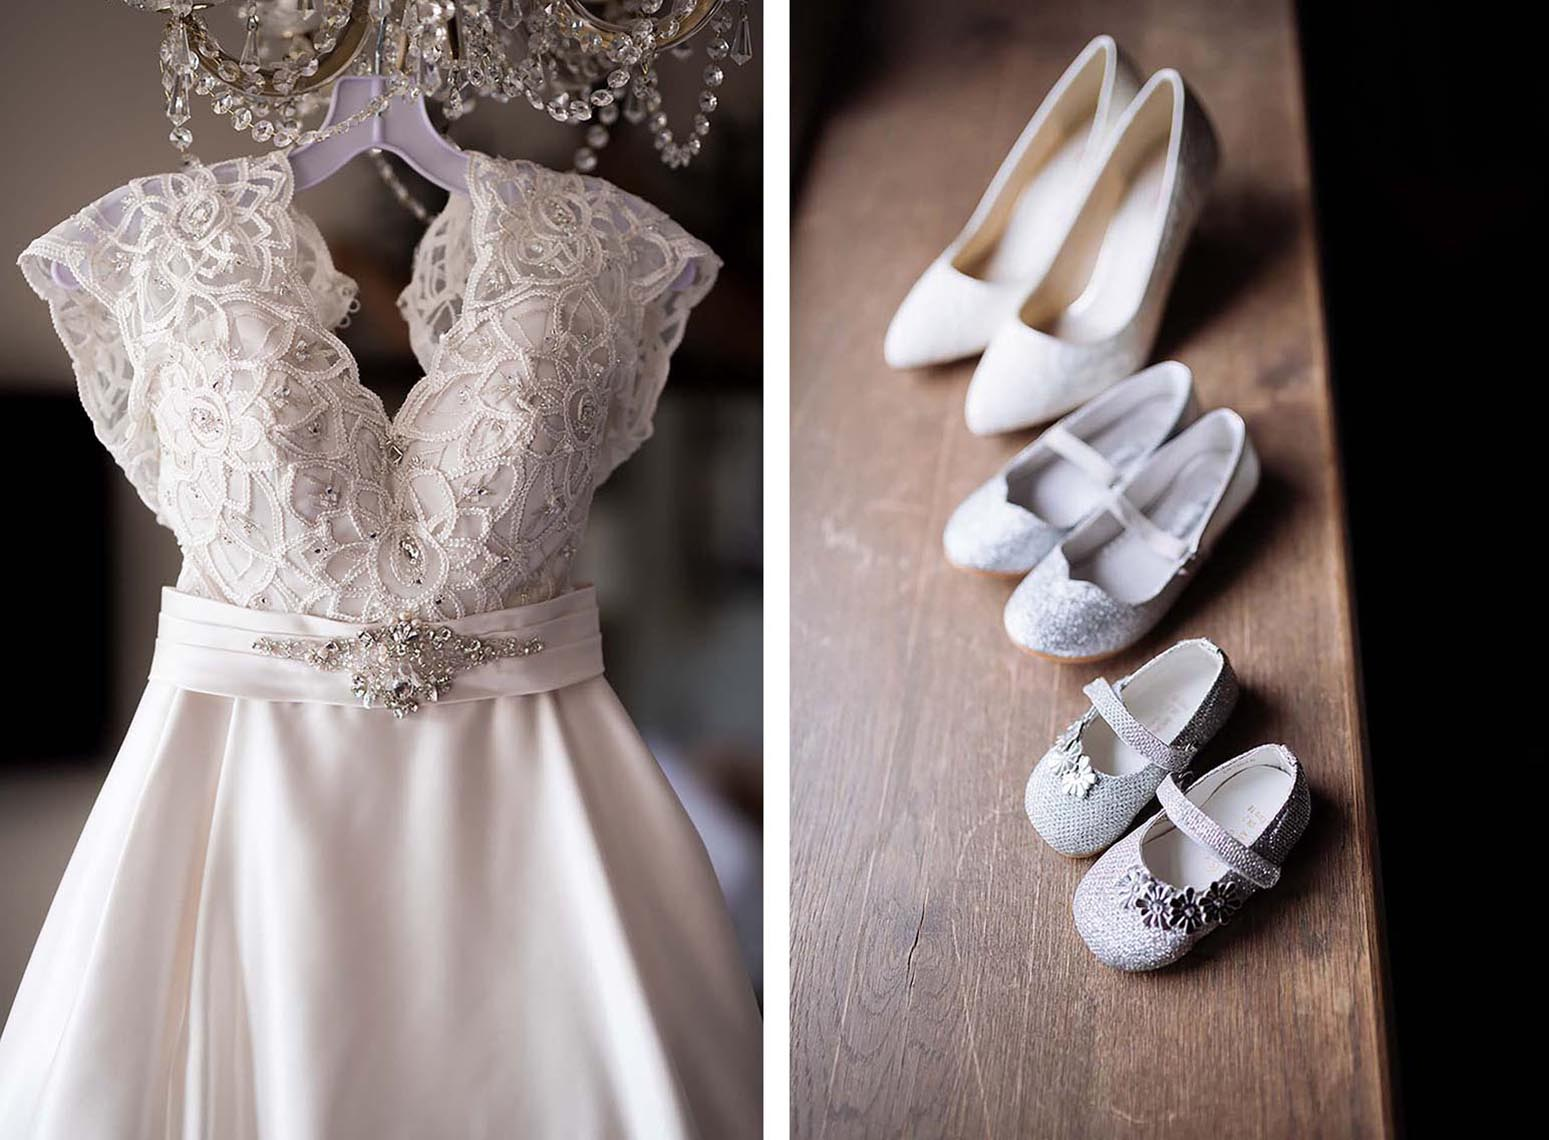 wedding-dress-details-pairs-of-shoes-02